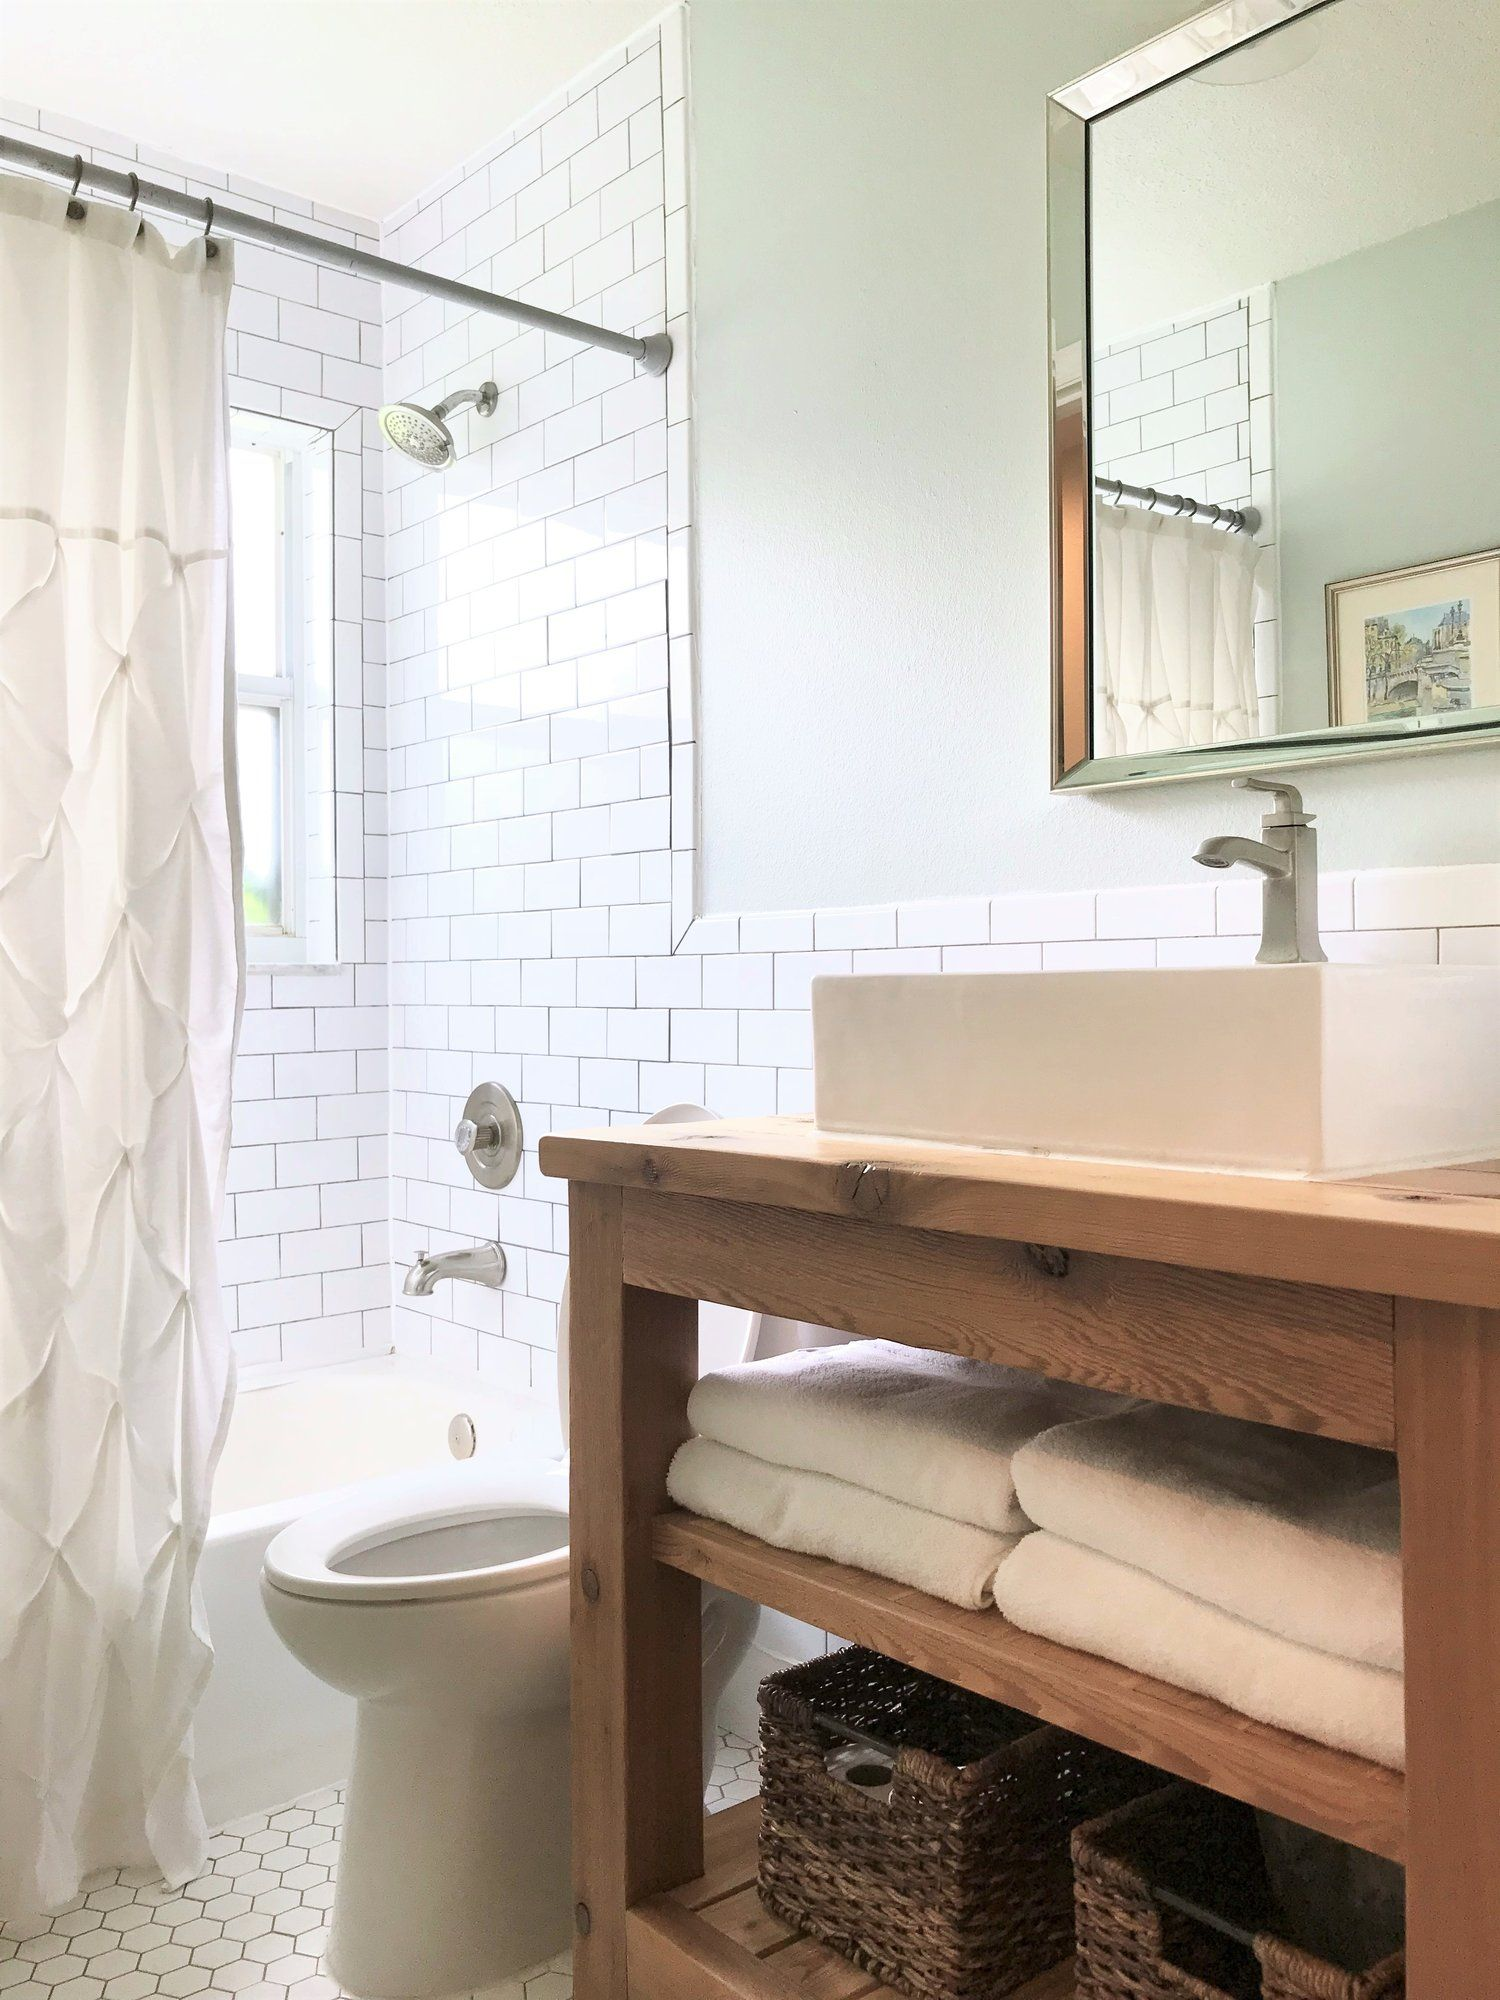 Guest Bathroom Remodel: Before and After (With images ...